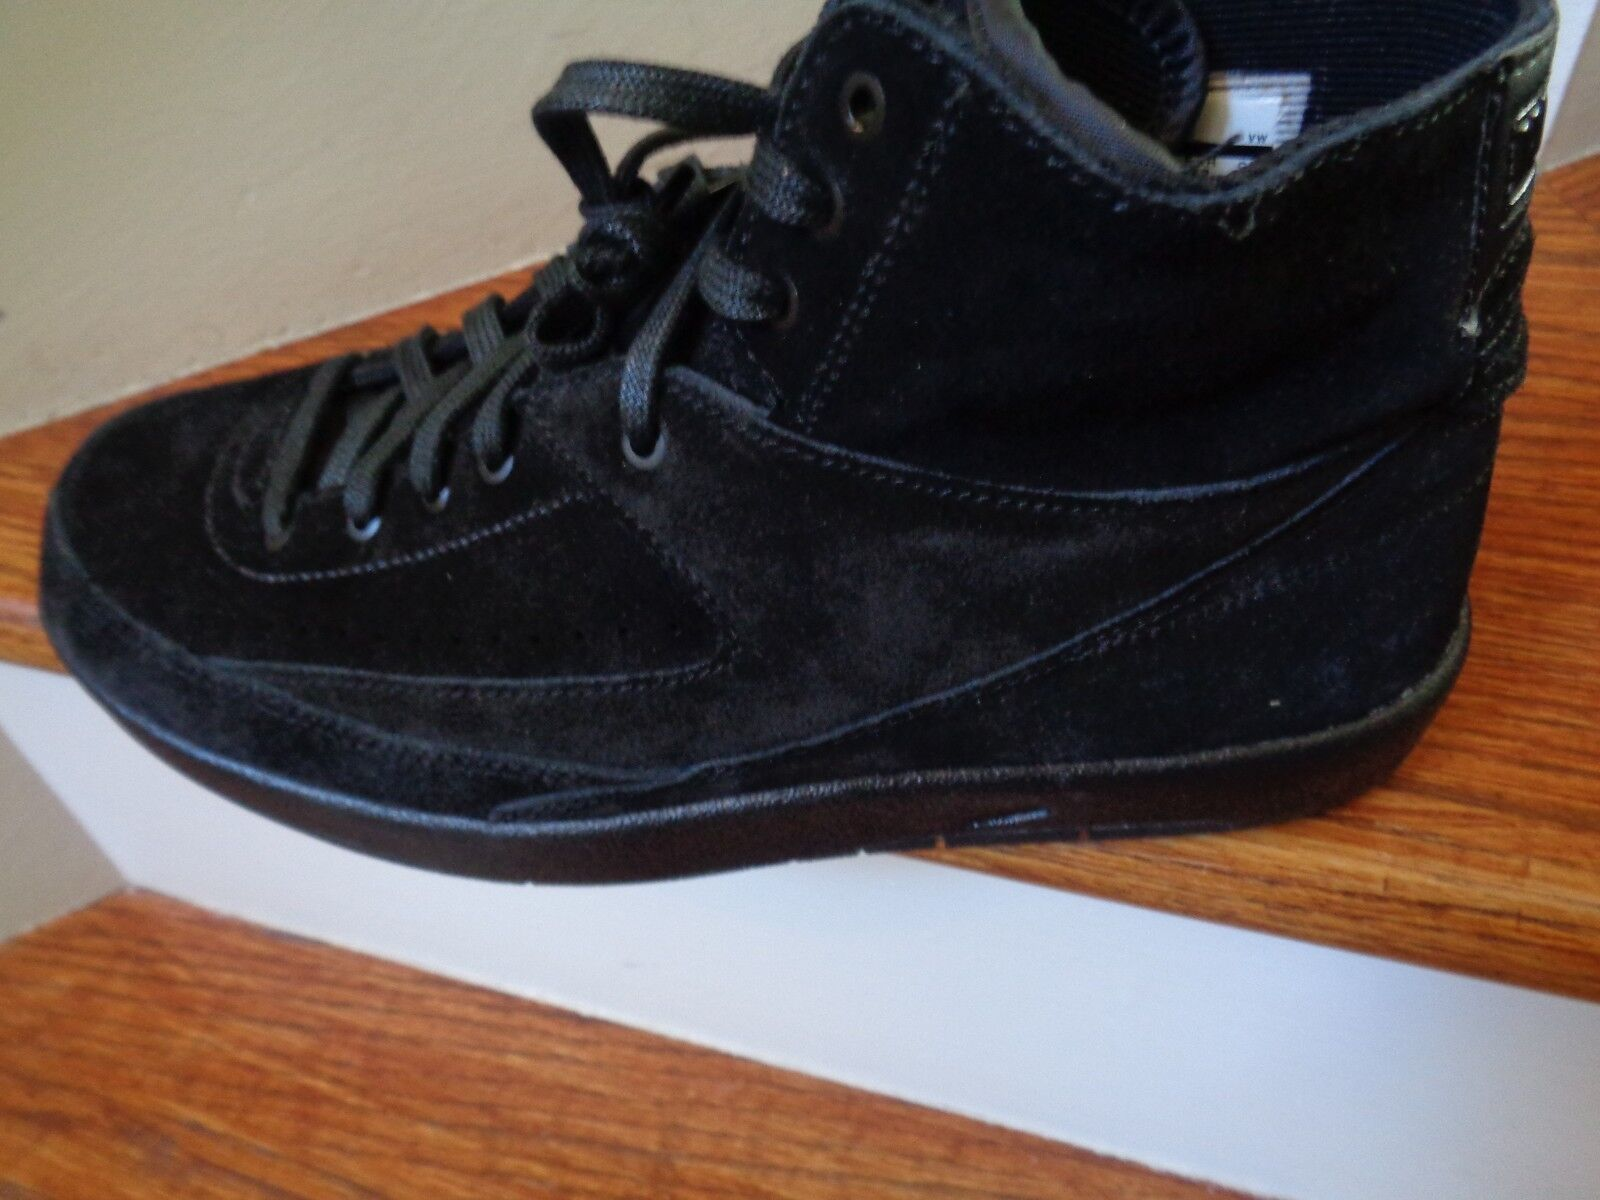 2e7c0ee15bc Nike Air Jordan 2 Retro Decon Men's Basketball shoes, 897521 010 Size 9.5  NEW noeqks9110-Athletic Shoes